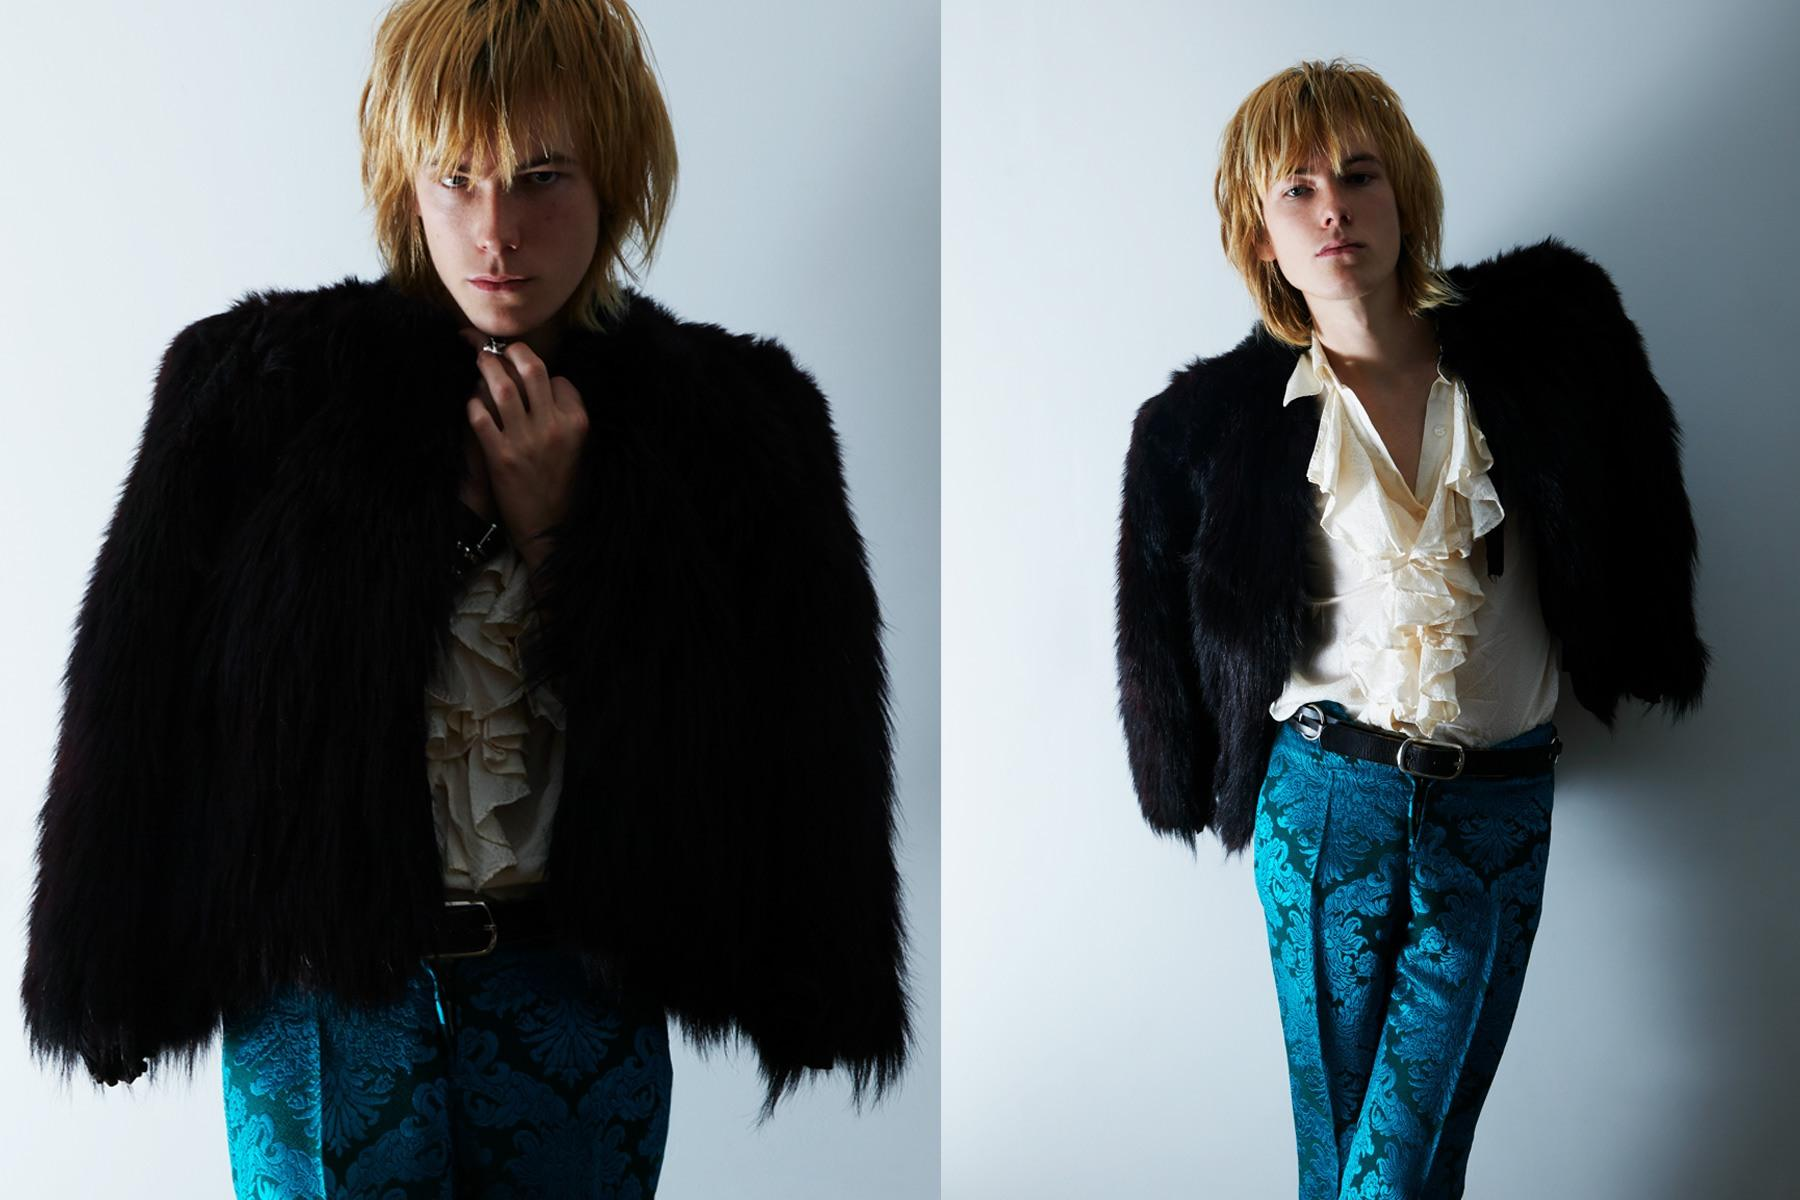 Sid Simons, from the band Beechwood, styled by Amber Doyle, with photography by Alexander Thompson for Ponyboy magazine.